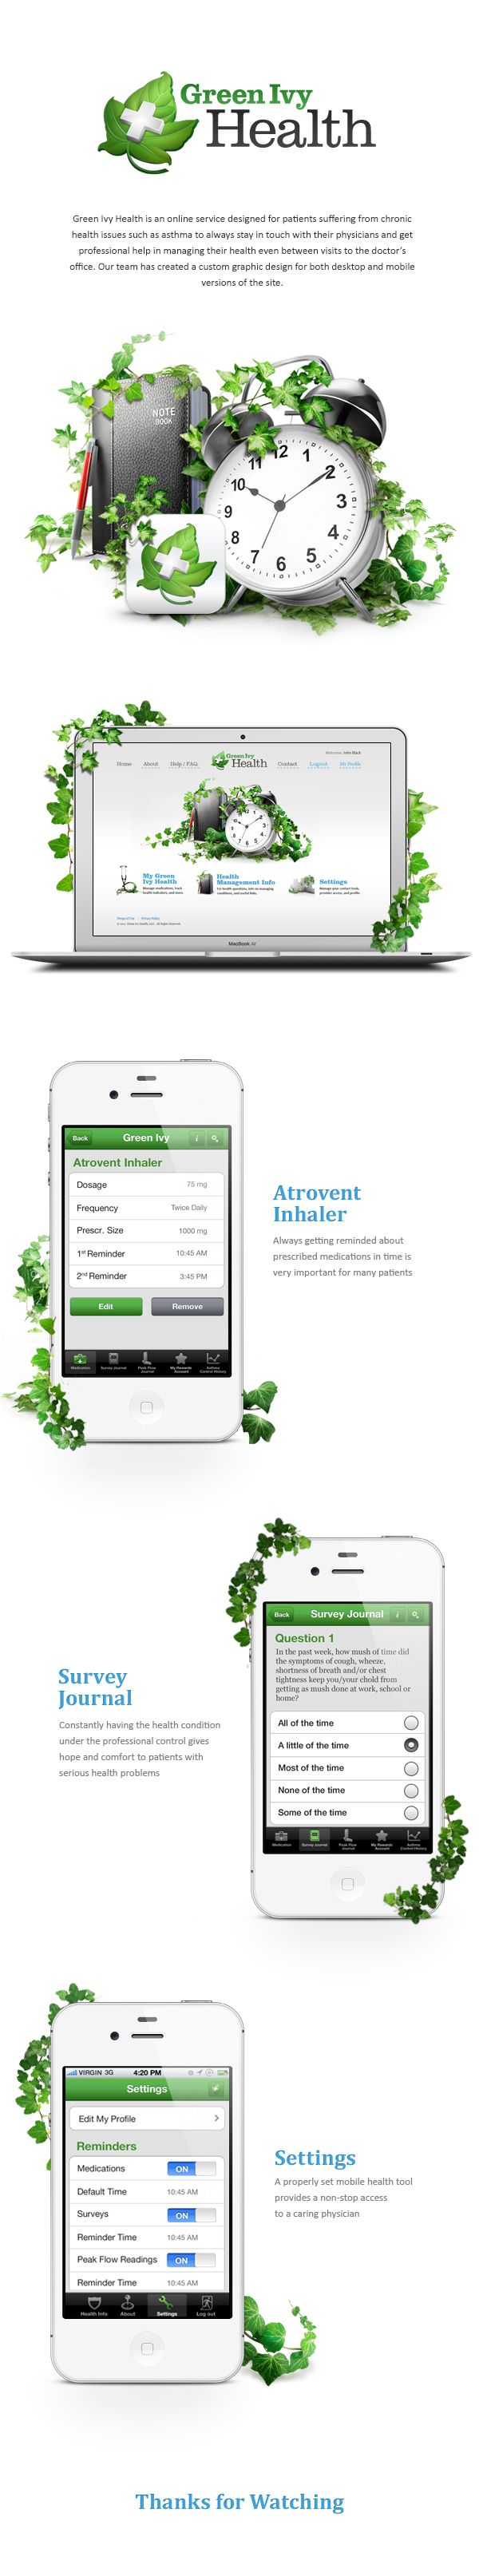 Green Ivy by Alex Ds Karera, via Behance *** Green Ivy Health is an online service designed for patients suffering from chronic health issues such as asthma to always stay in touch with their physicians and get professional help in managing their health even between visits to the doctor's office...